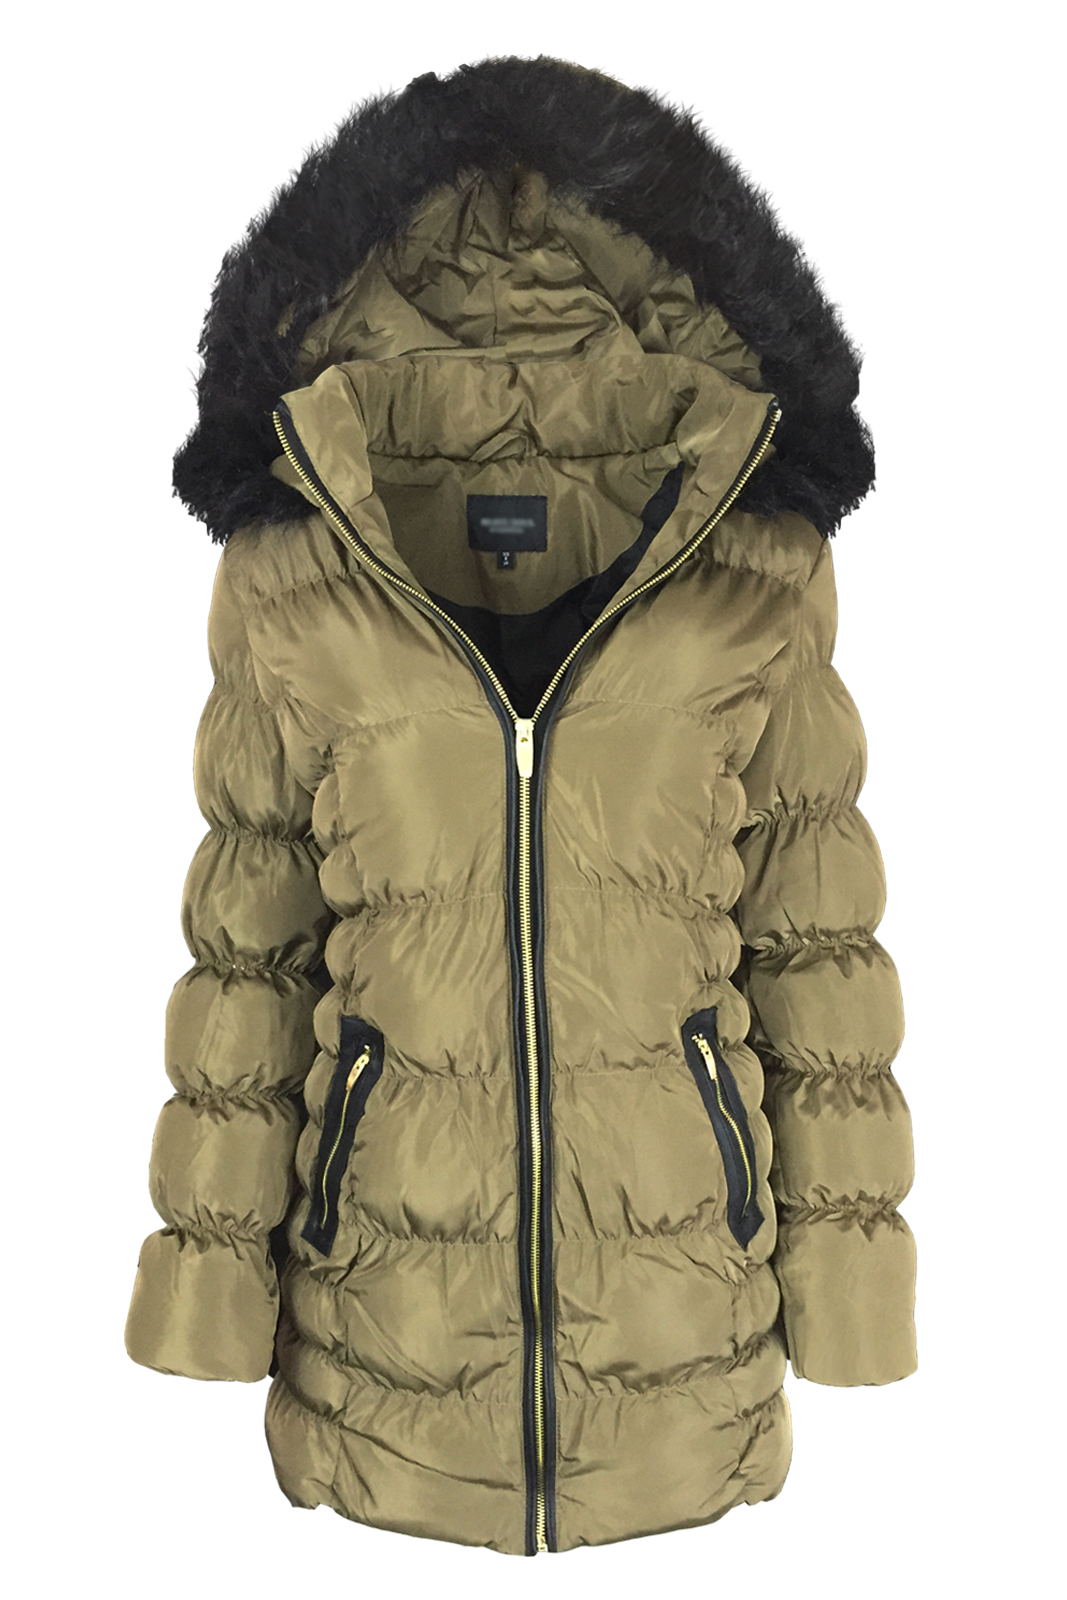 Ladies New Parka Faux Fur Hooded Jacket Warm Puffer Padded ...